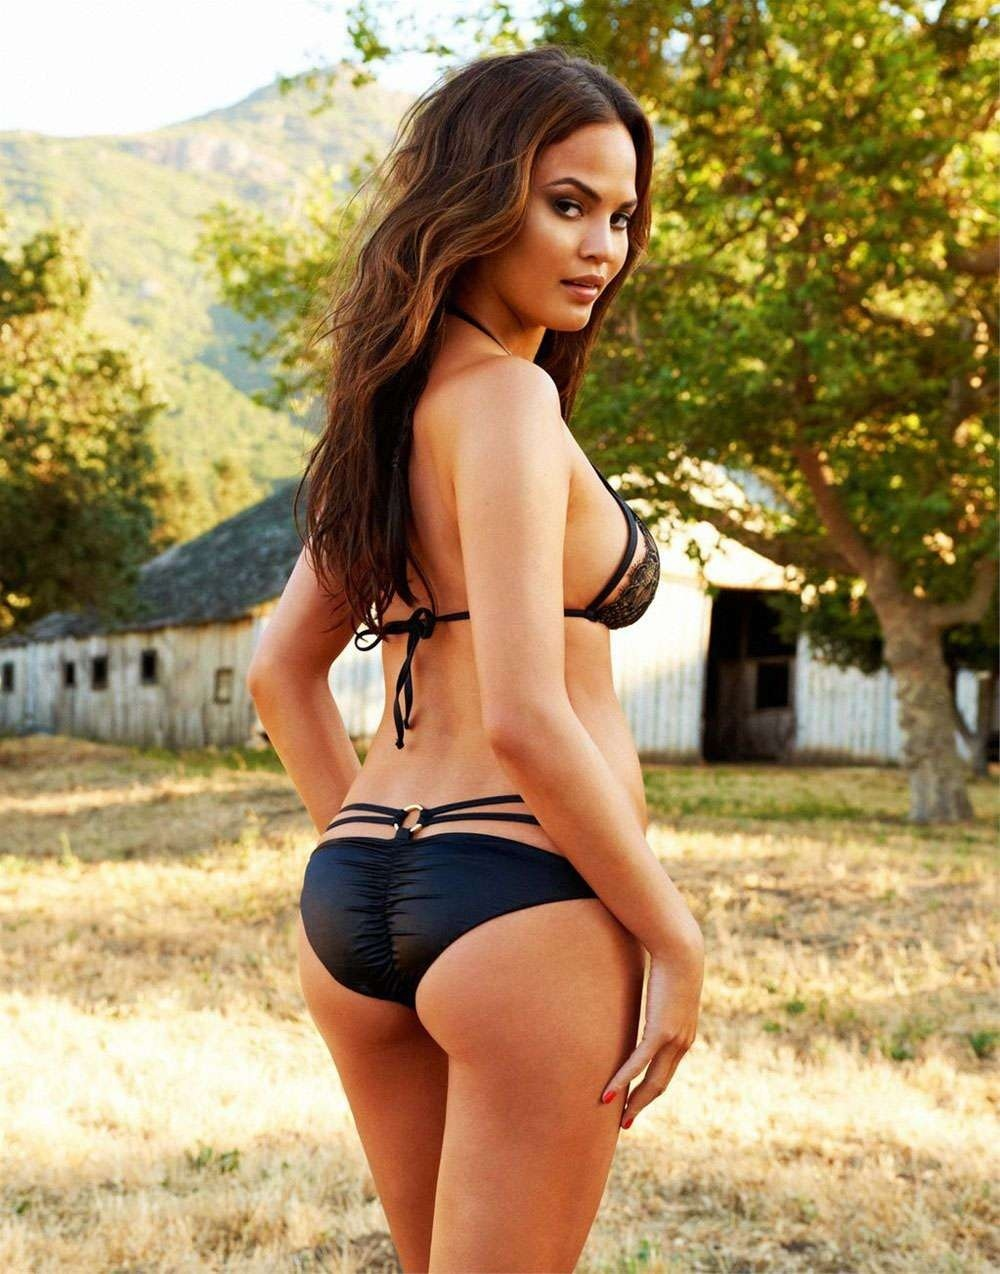 Chrissy Teigen In Black String Bikini Photo Chrissy Teigen